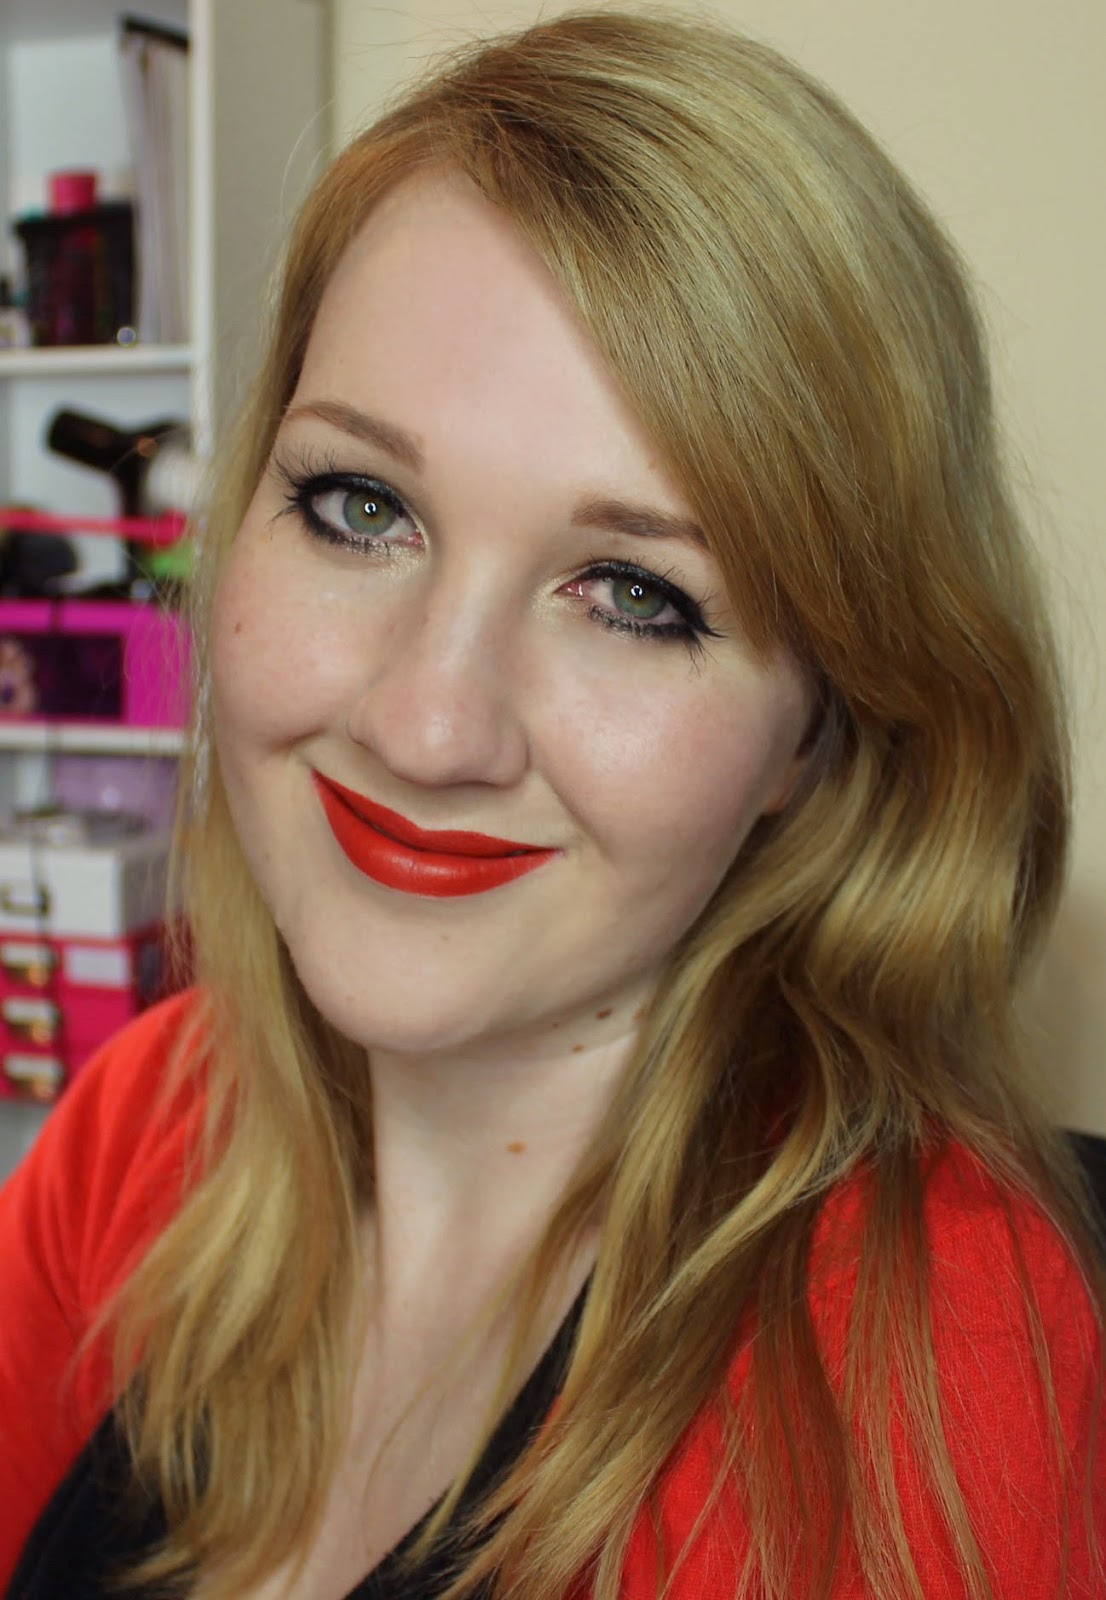 MAC X Rocky Horror Picture Show Lipsticks: Strange Journey Swatches & Review